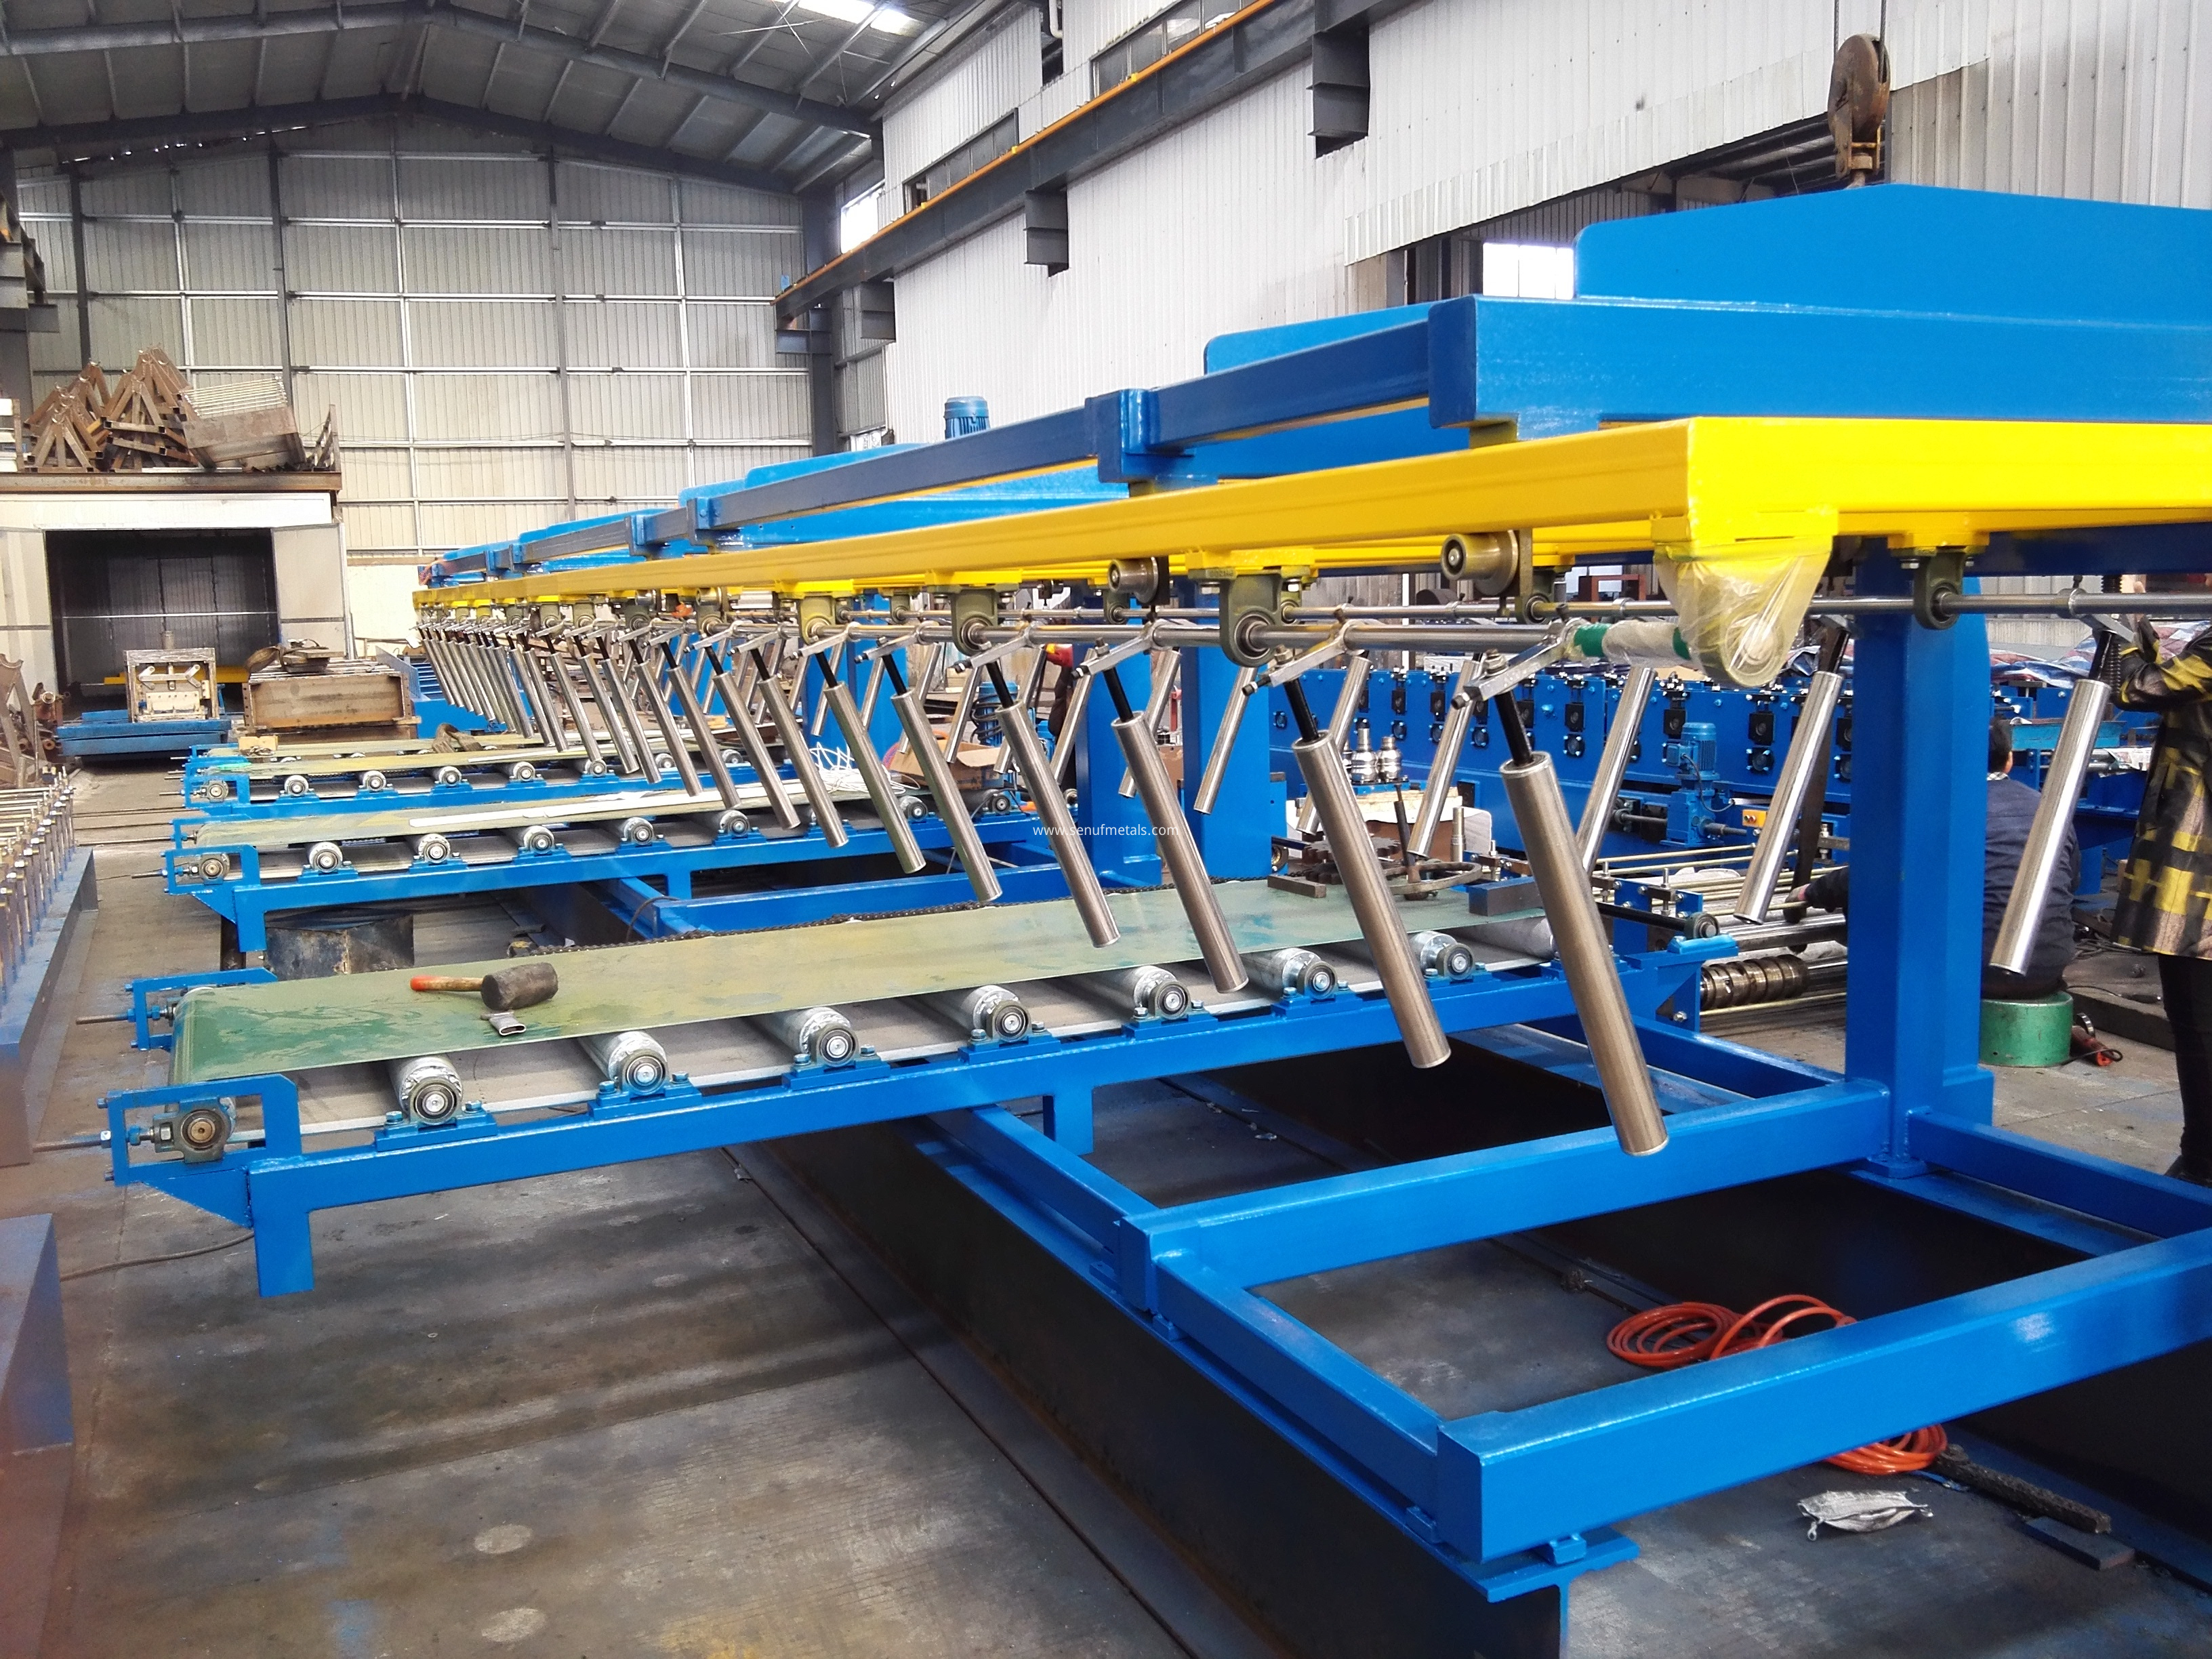 Auto stacker machine